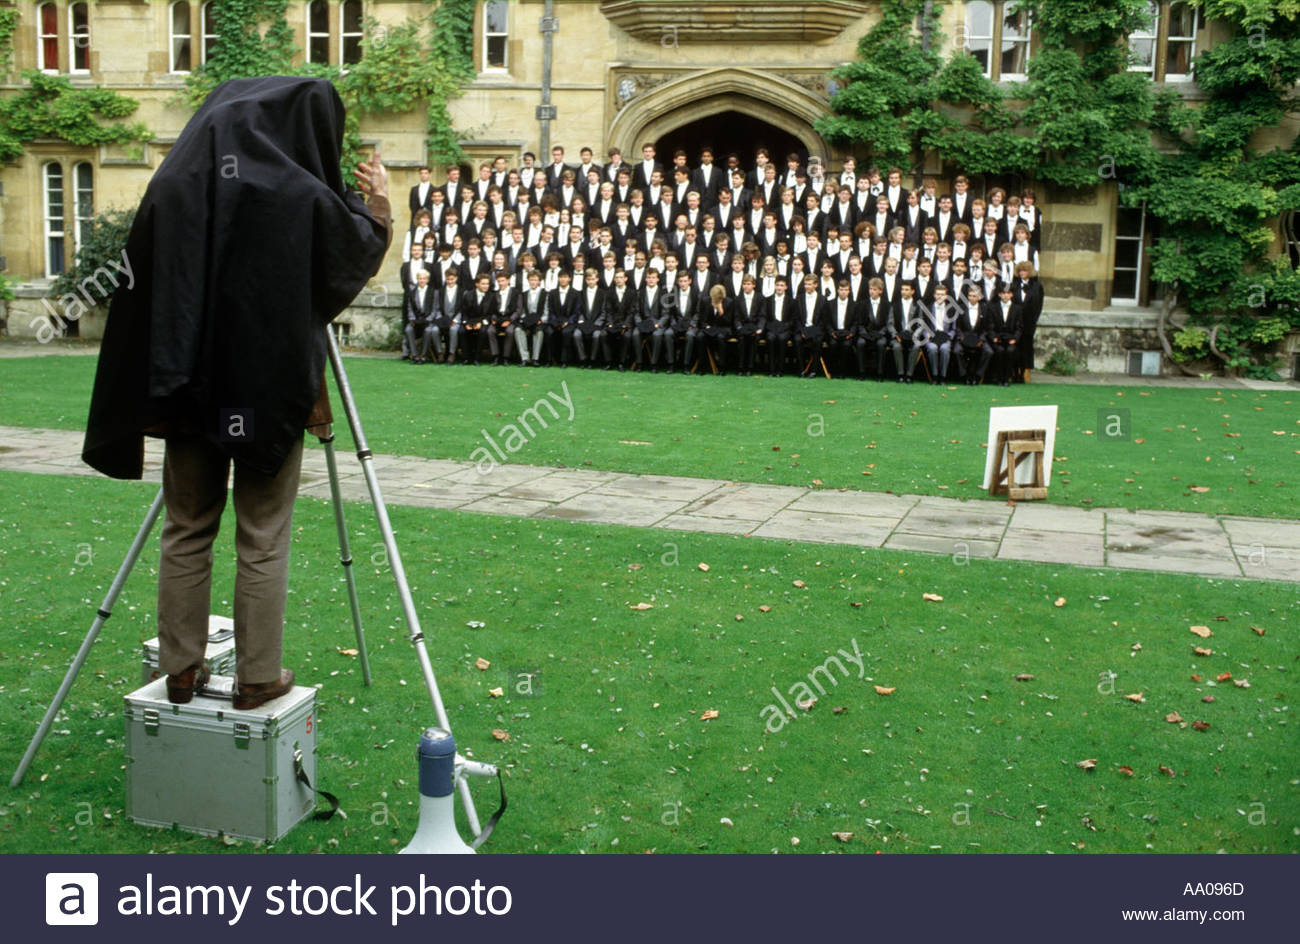 First year students pose for a matriculation photograph at University College Oxford  - Stock Image